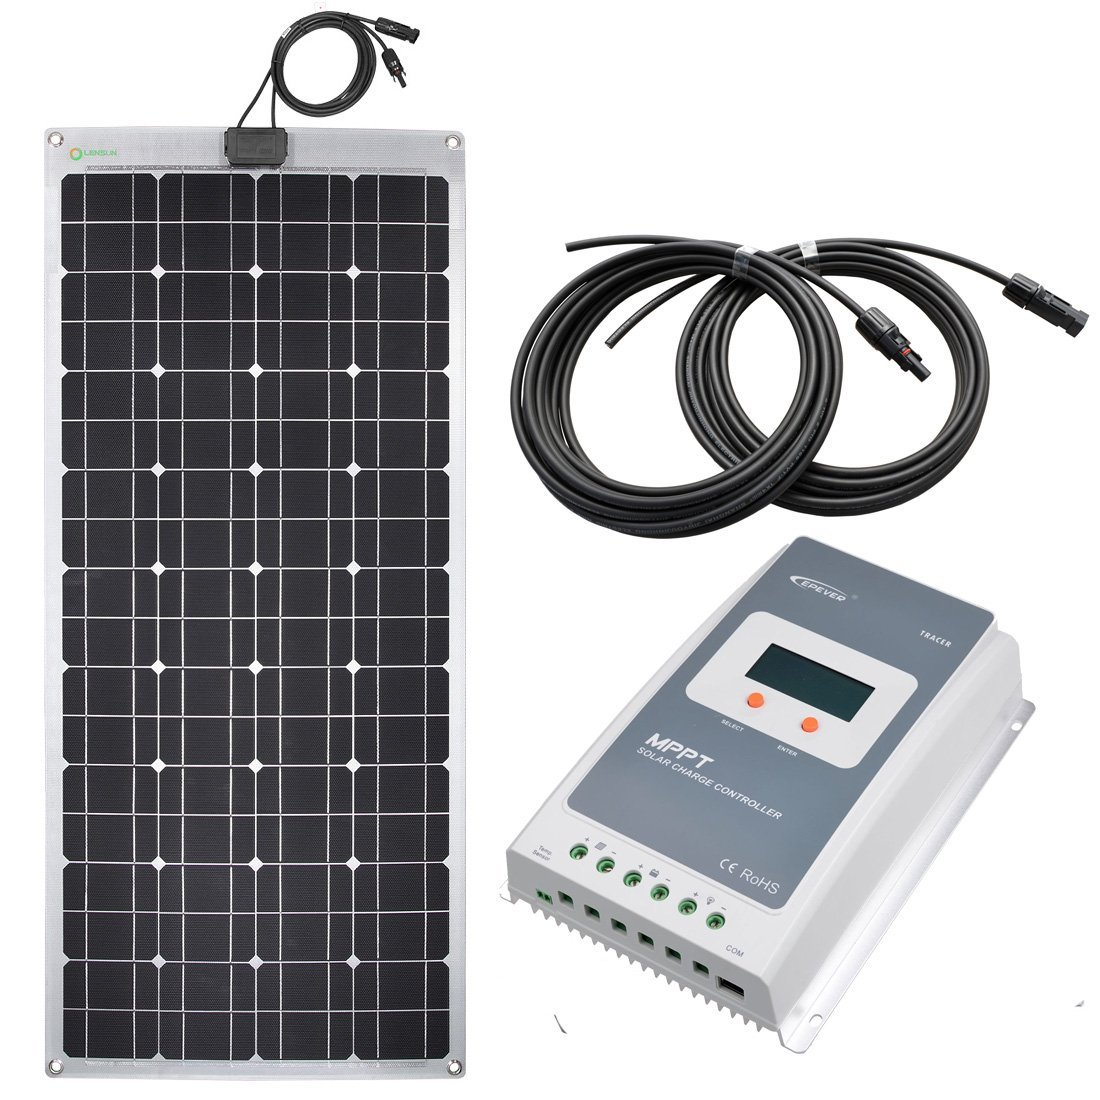 Lensun 200w 12v Flexible Rv Solar Panel Kit With 20 Amp Controller Cell And Motor Circuit Electron Flow 2pcs 5m Mc4 Cables